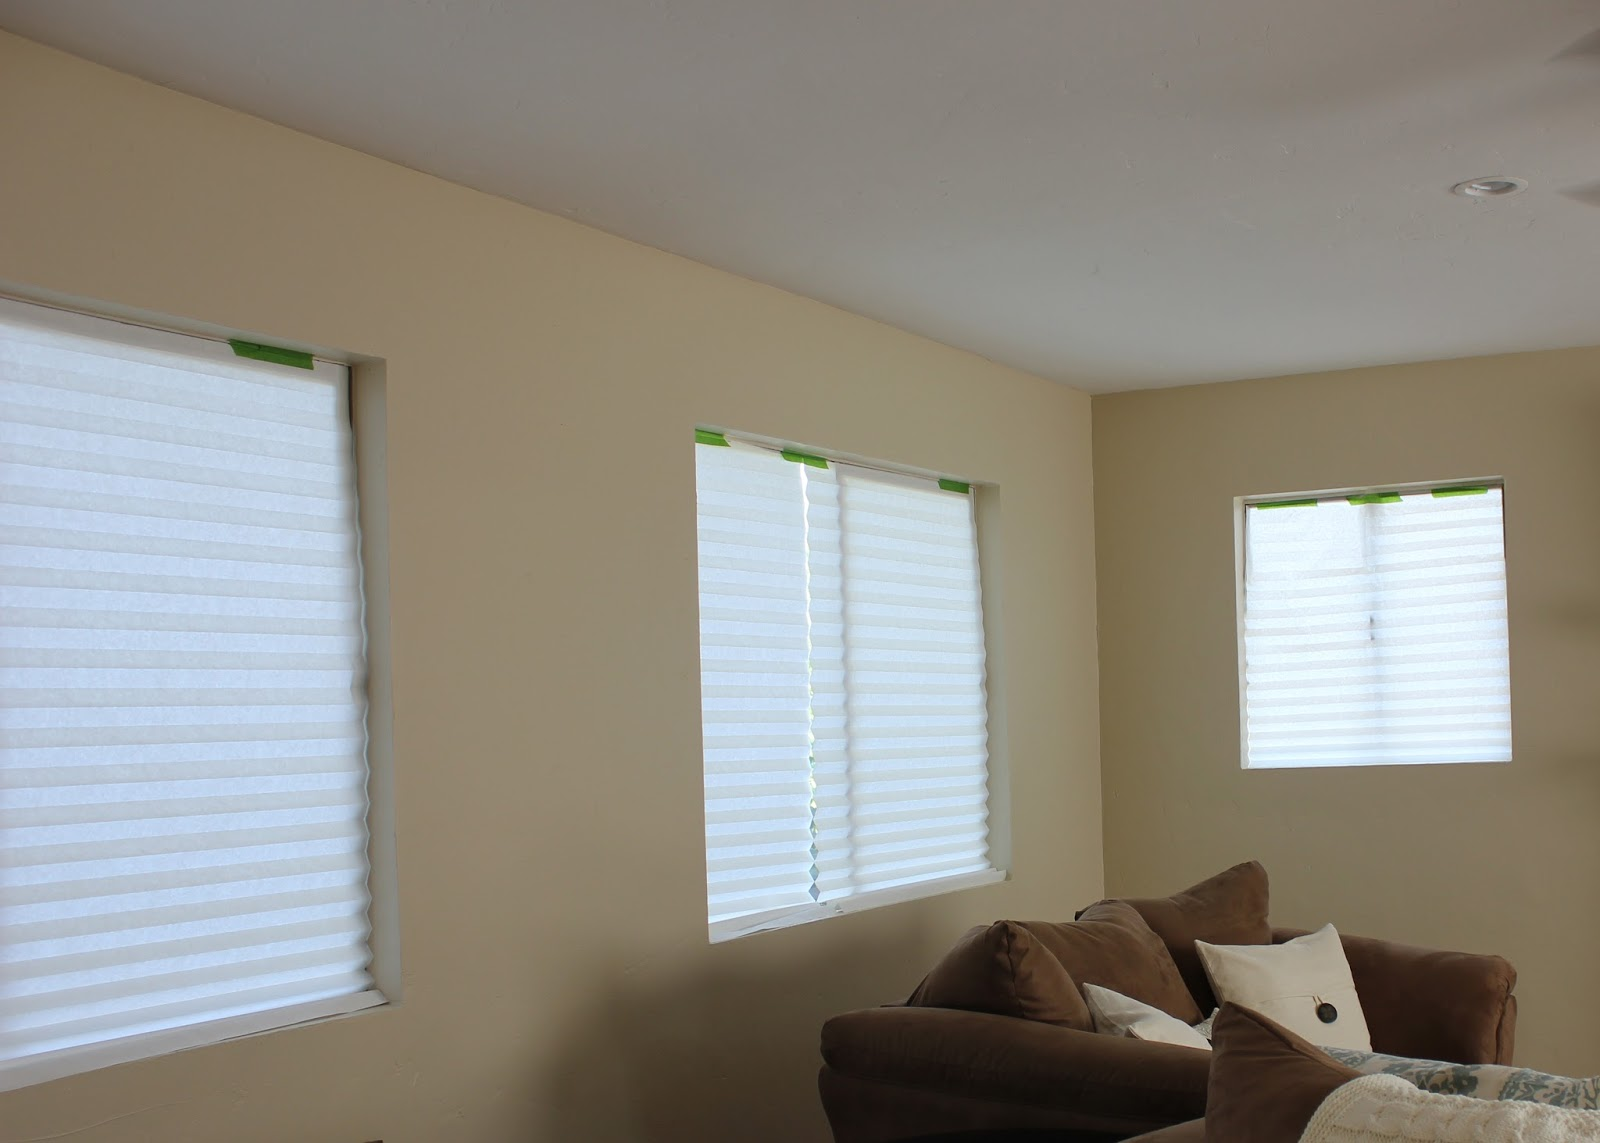 window companies blind blinds from verticals sovereign rollers